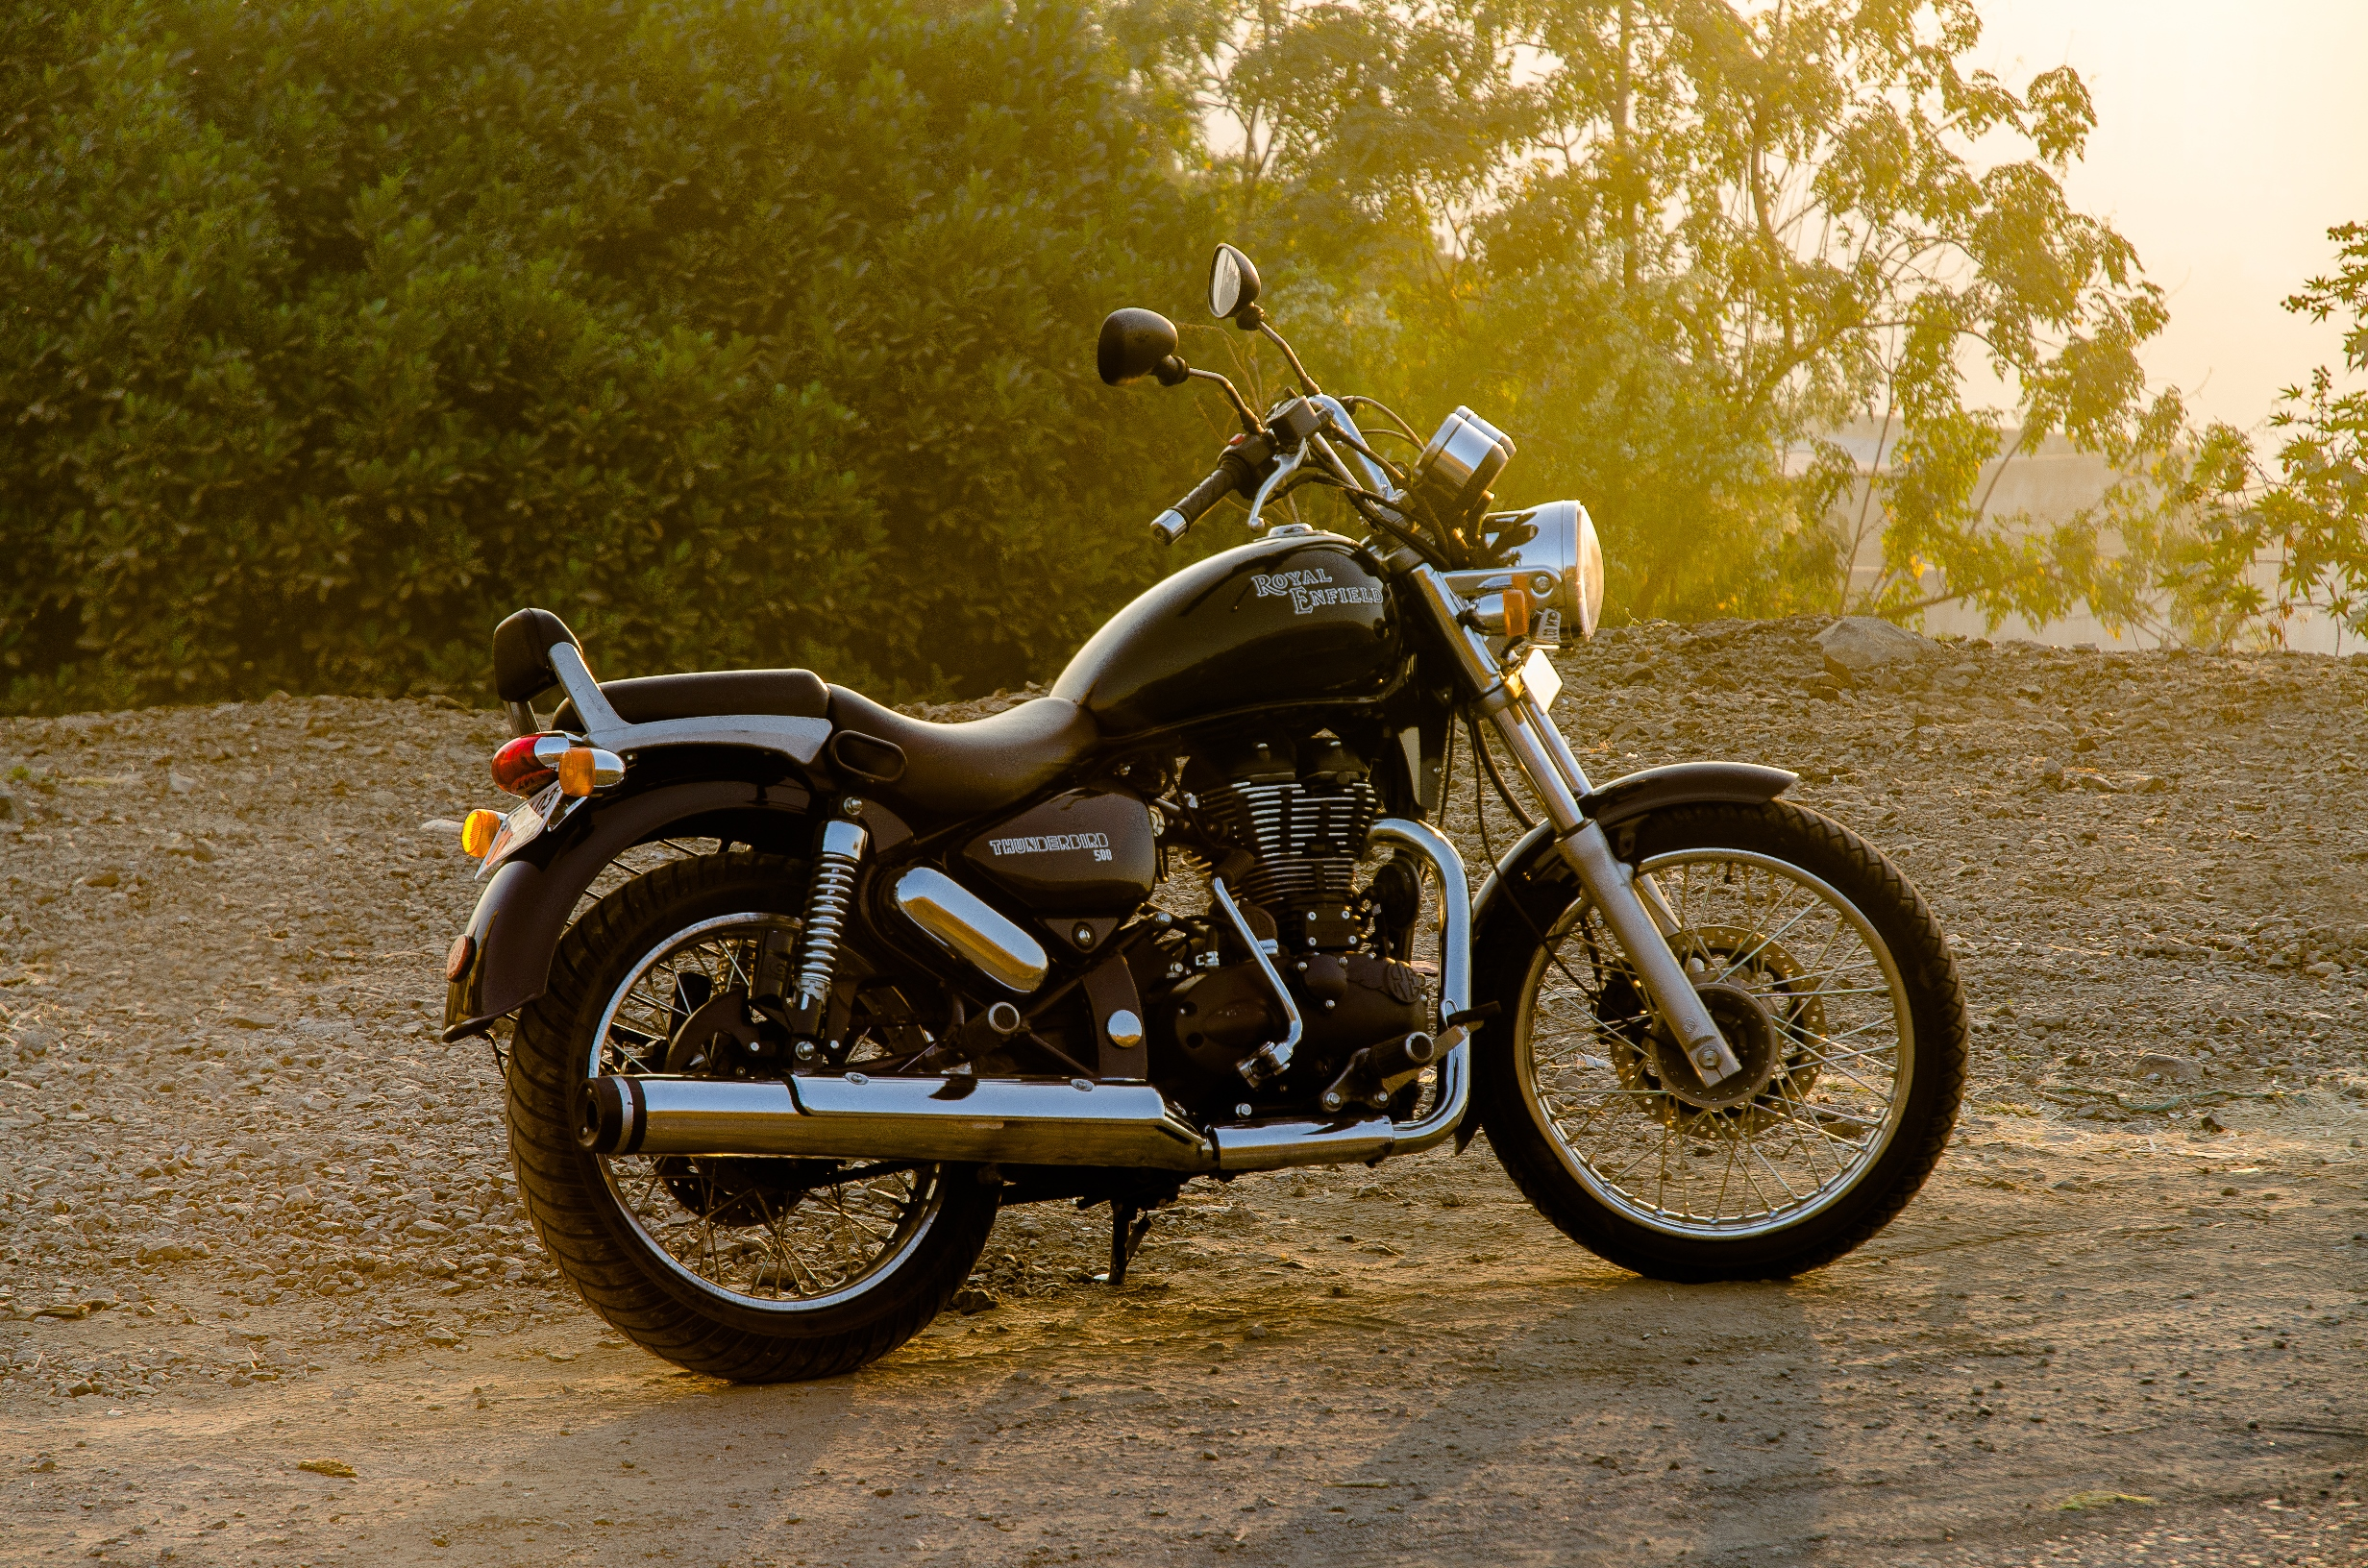 Royal Enfield Thunderbird 500 Road Test By Dilip Bam